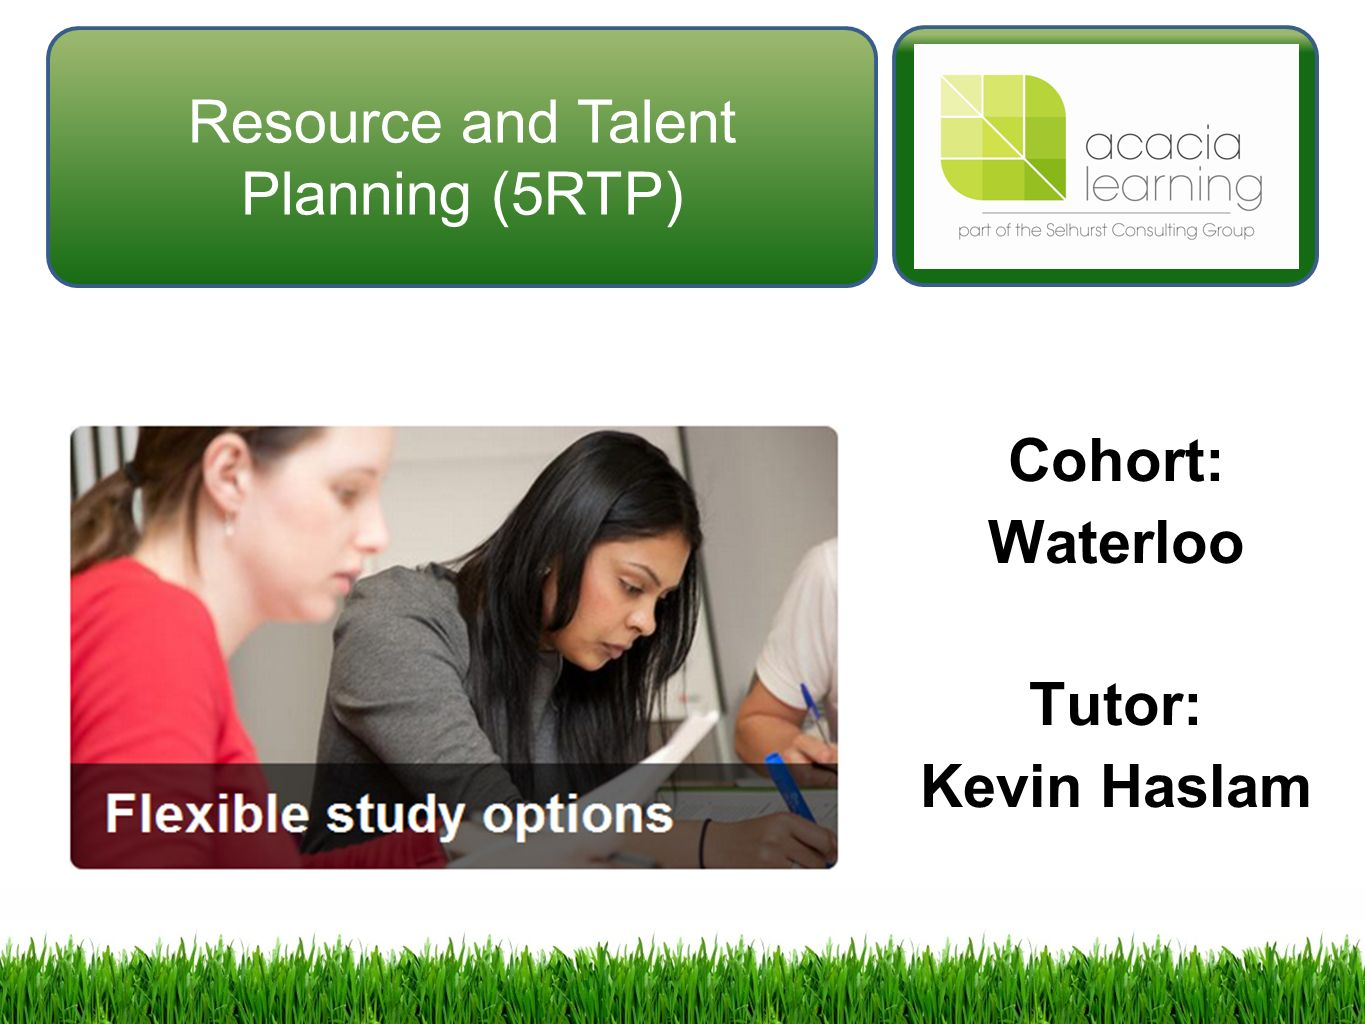 resourcing and talent planning Read this essay on resourcing and talent planning come browse our large digital warehouse of free sample essays get the knowledge you need in order to pass your classes and more.